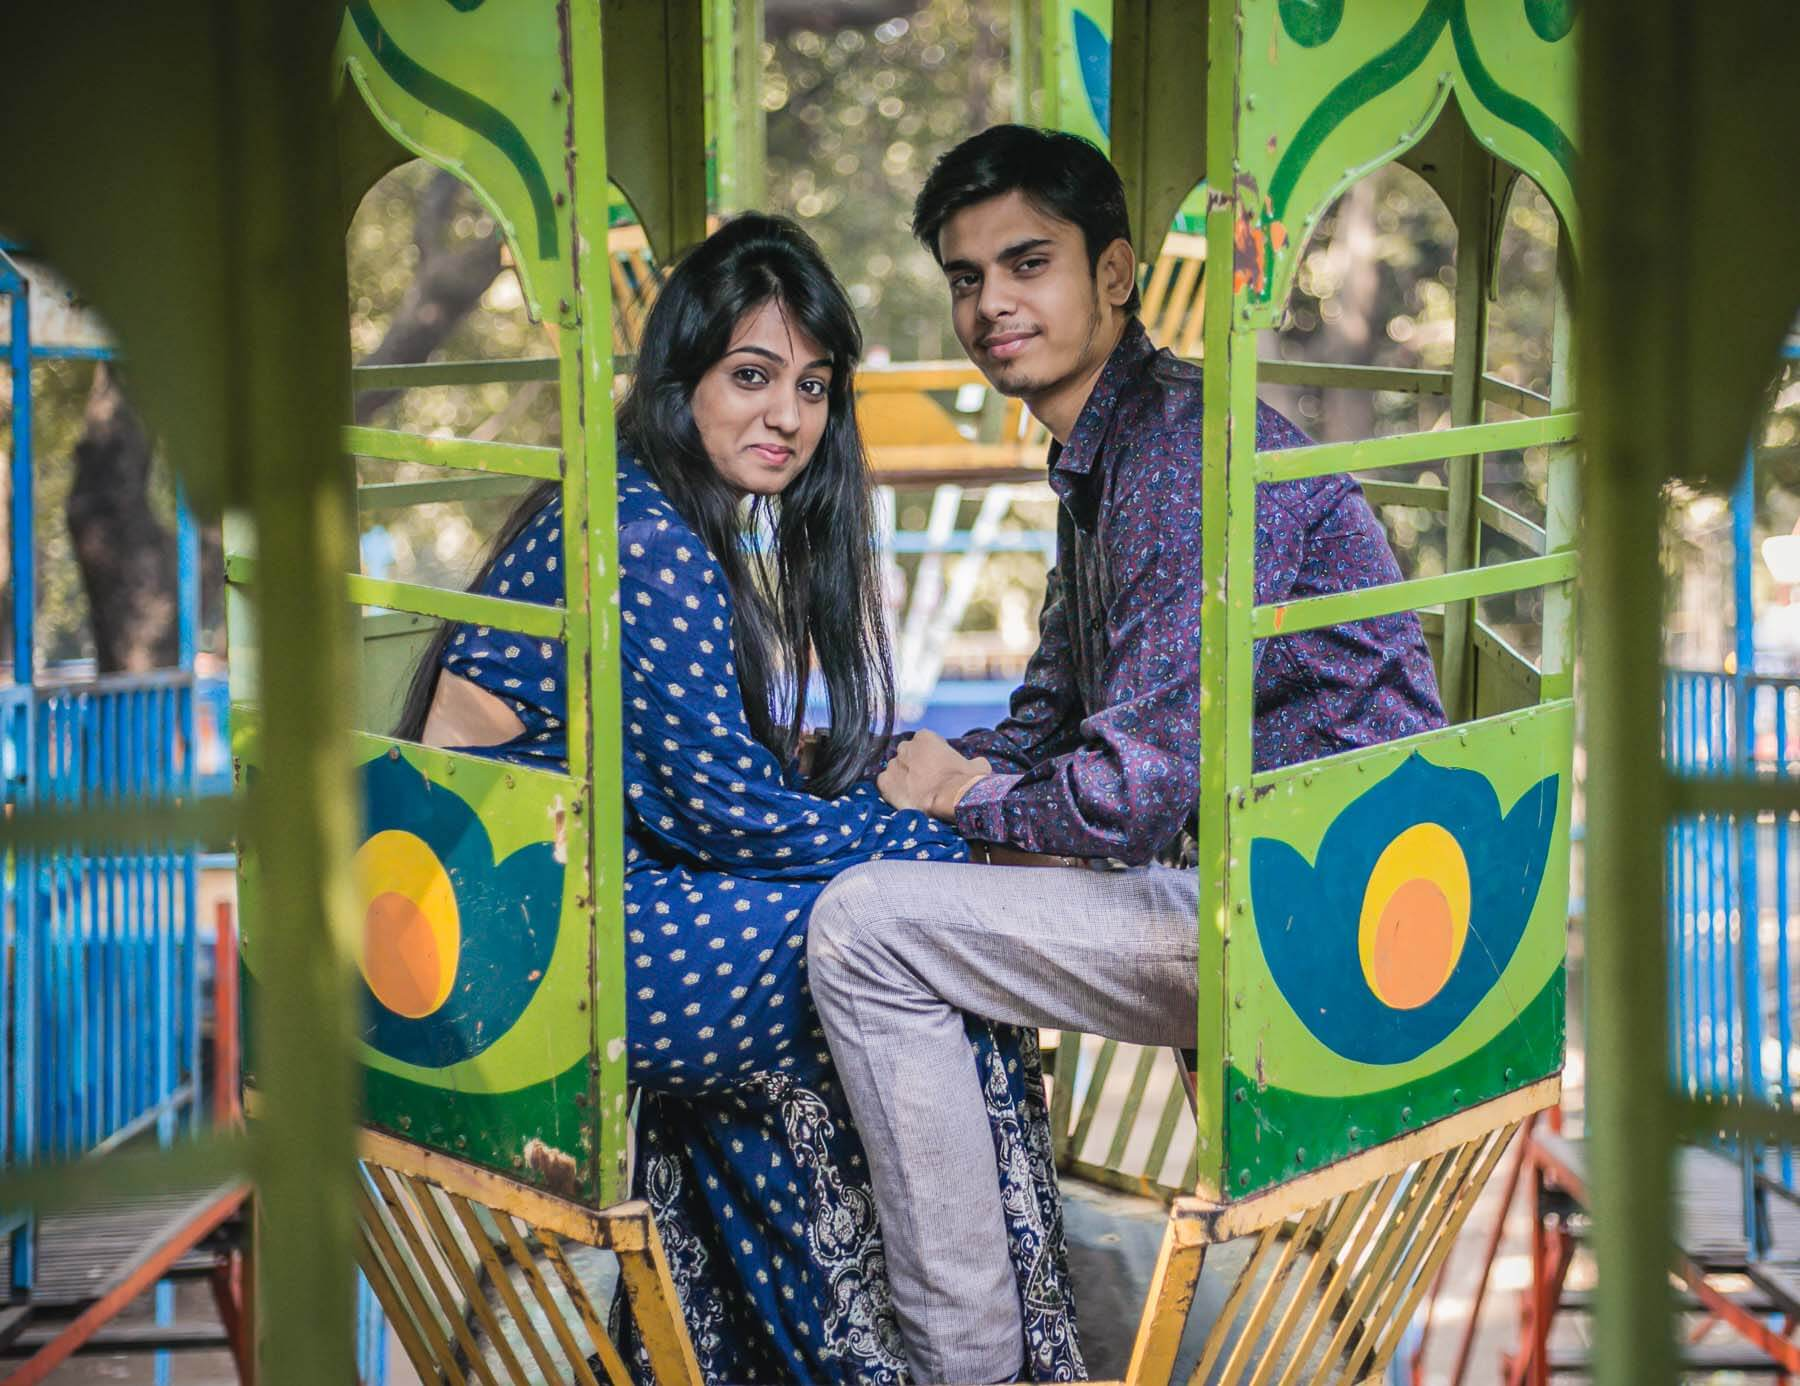 Wedding photographer Pune